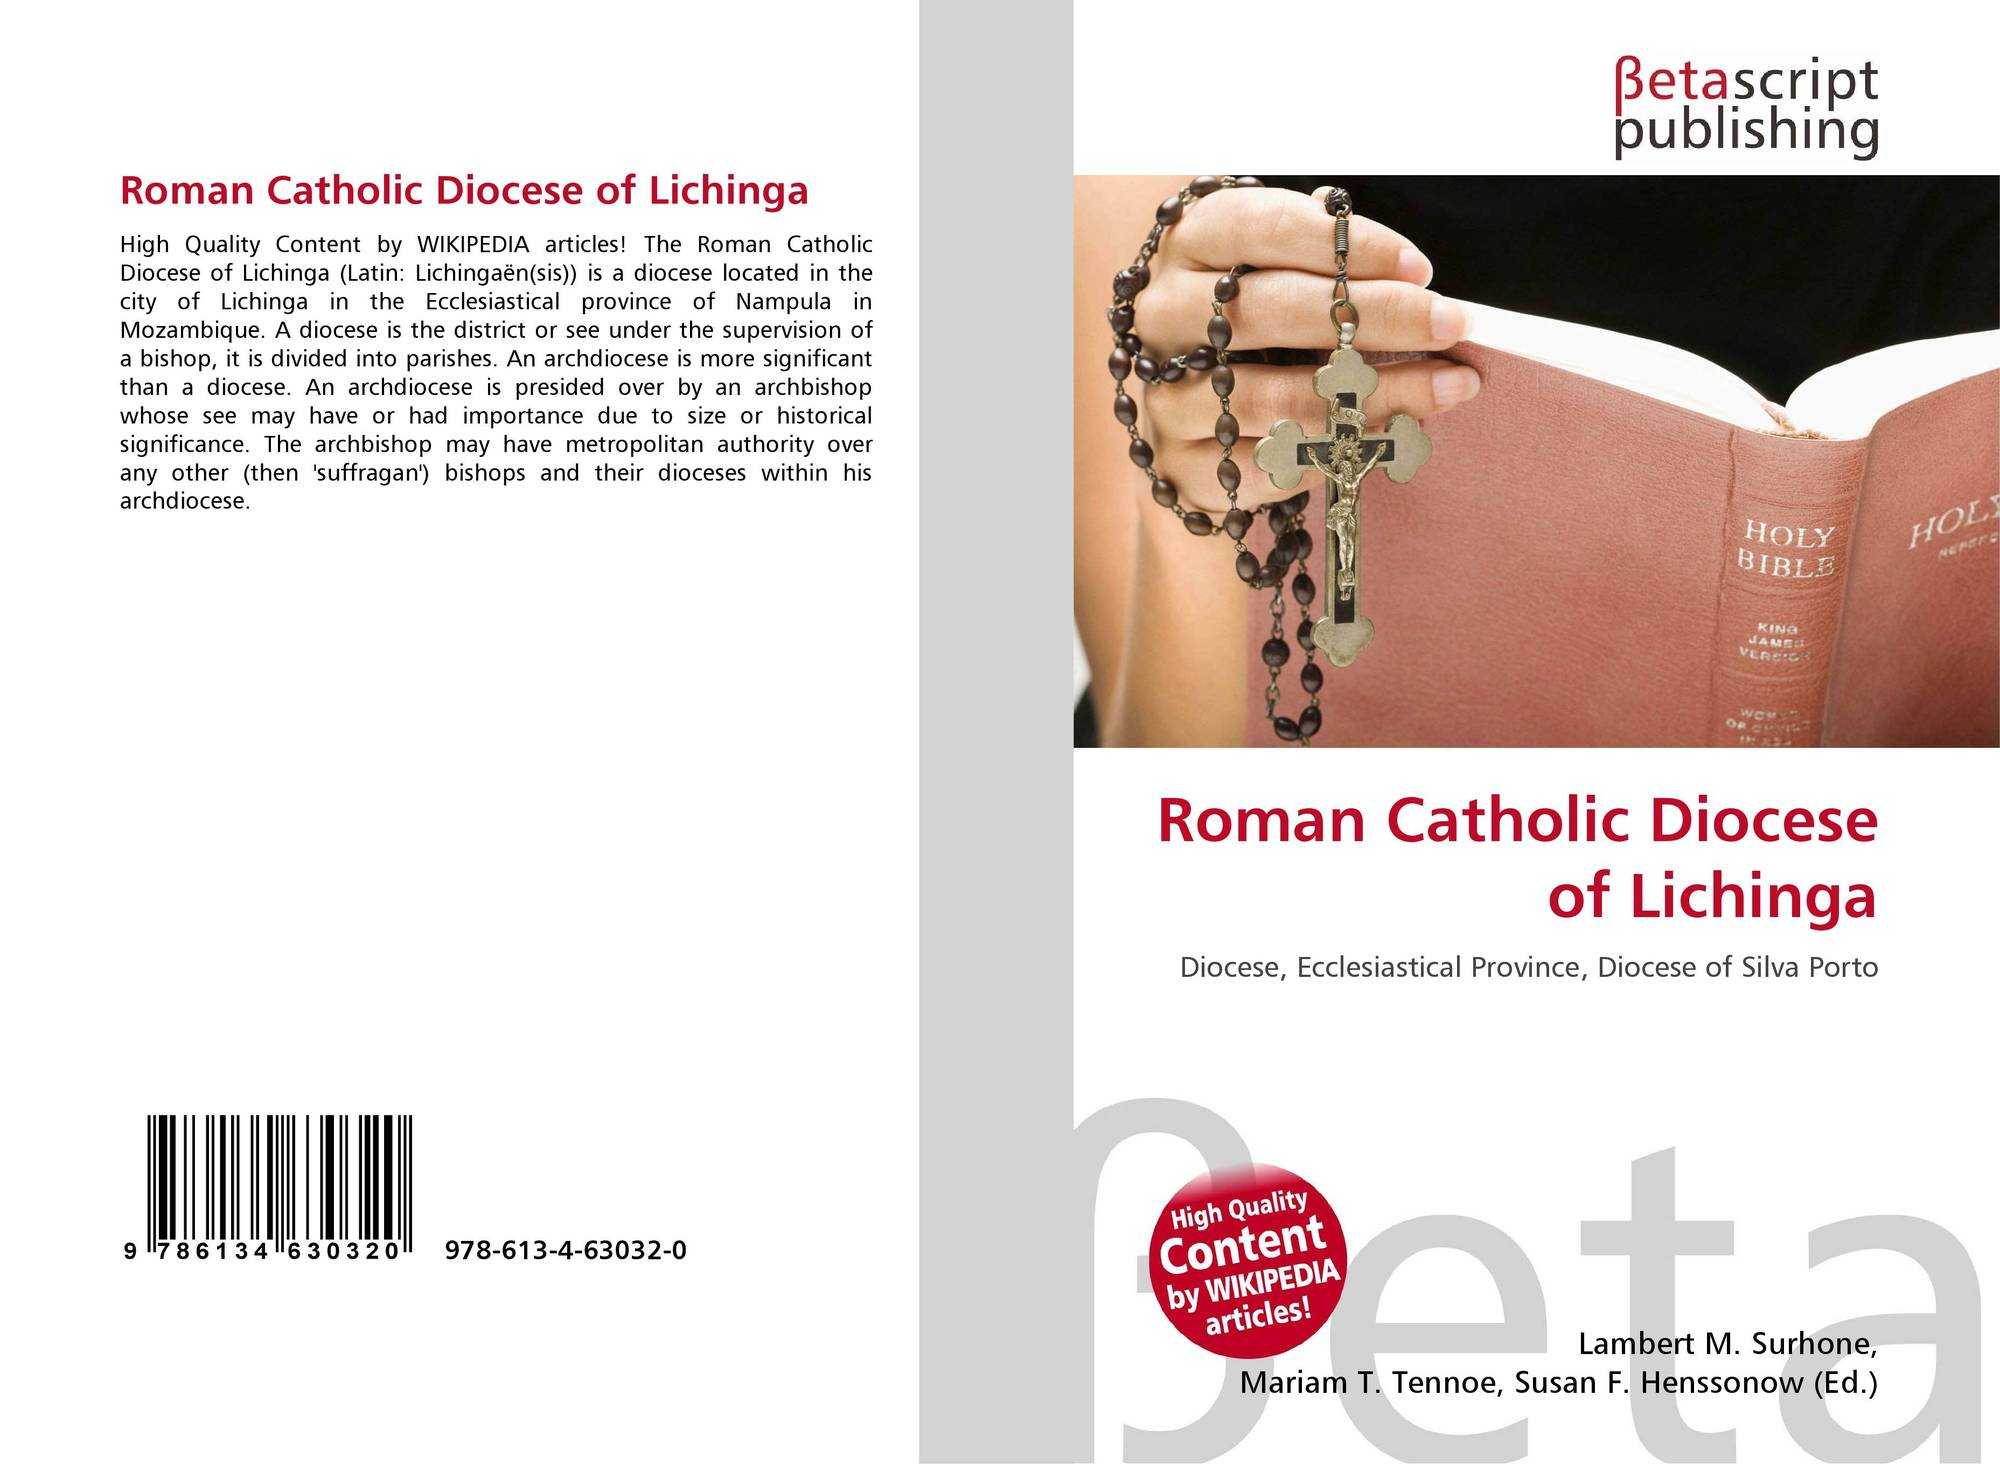 Roman Catholic Diocese of Lichinga #